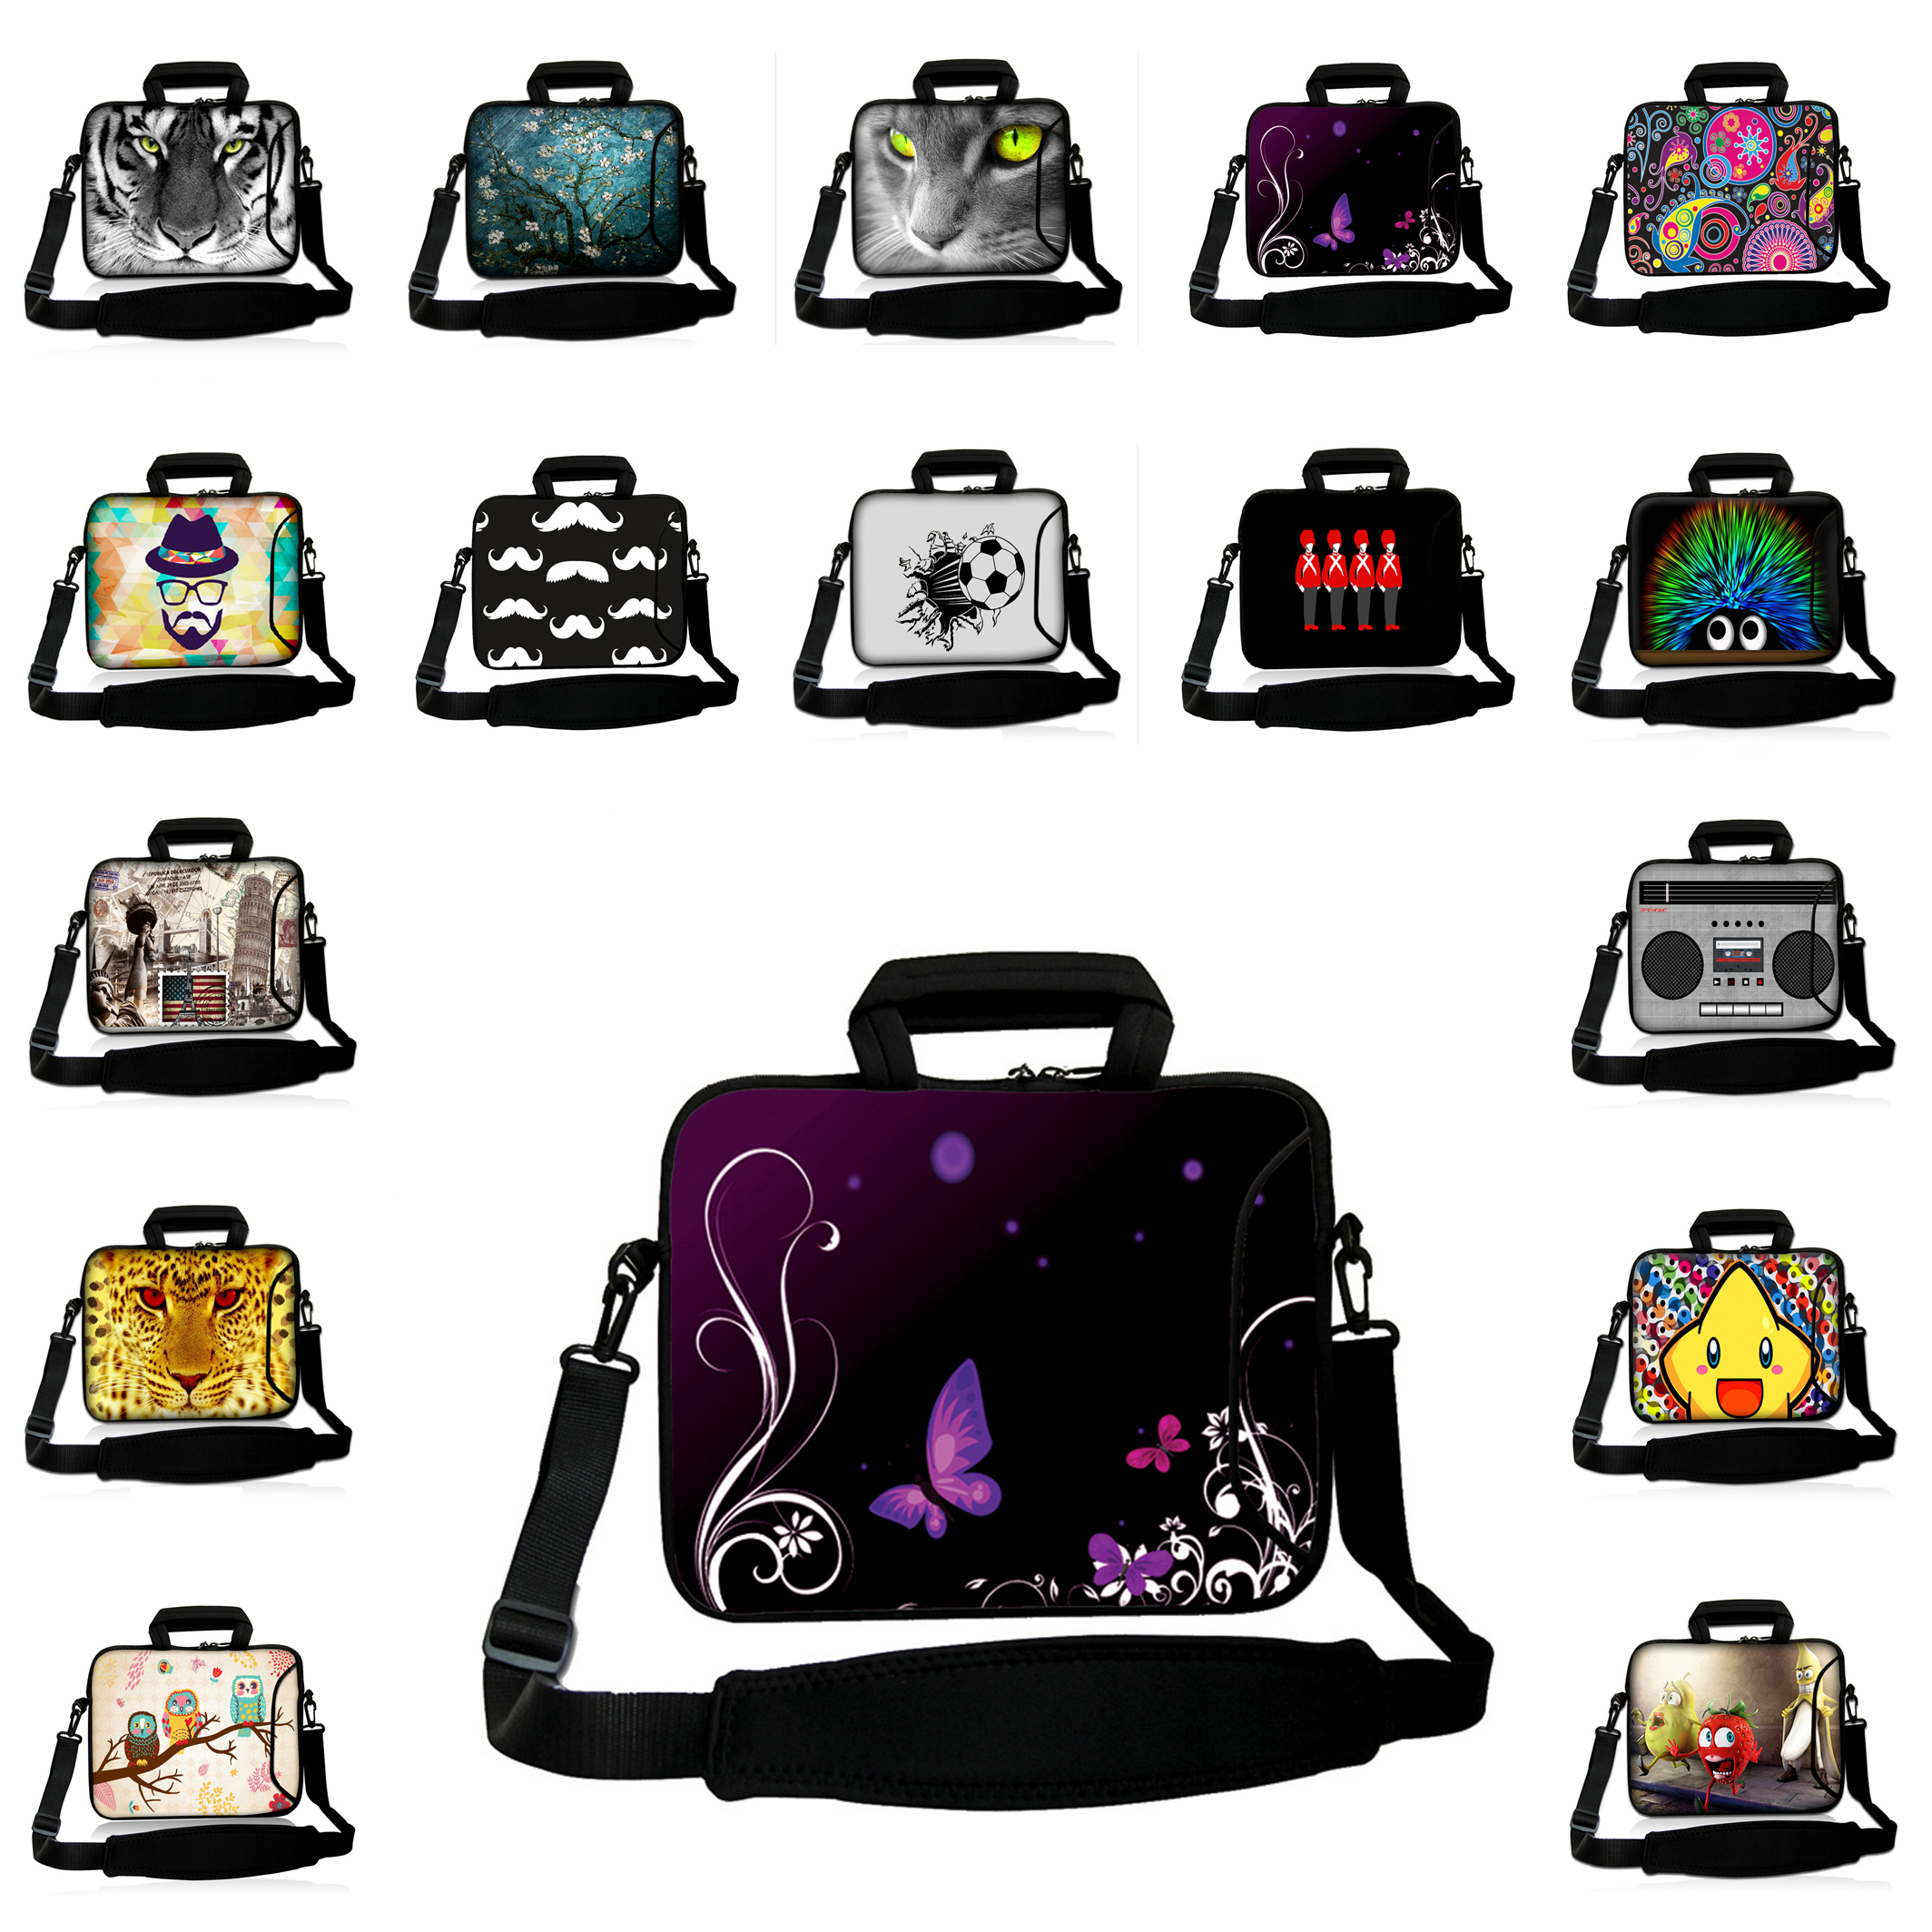 15 inch Newest Neoprene Laptop Cases 15.6 15.3 15.4 inch Shoulder Strap Notebook Bags For Lenovo Sony Fashion Laptop Cover Pouch<br><br>Aliexpress